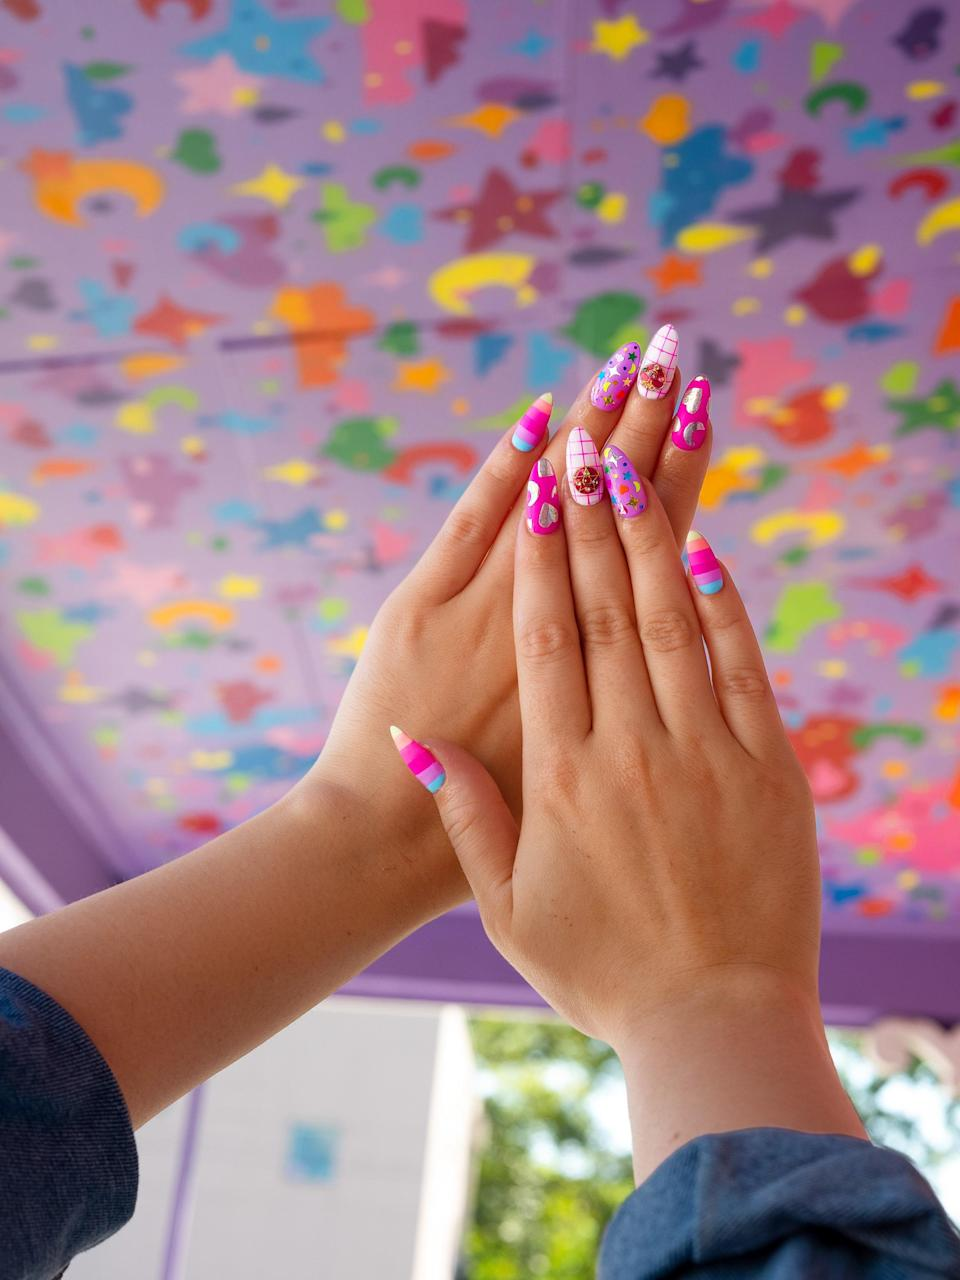 Eye-catching nail art is the main attraction.